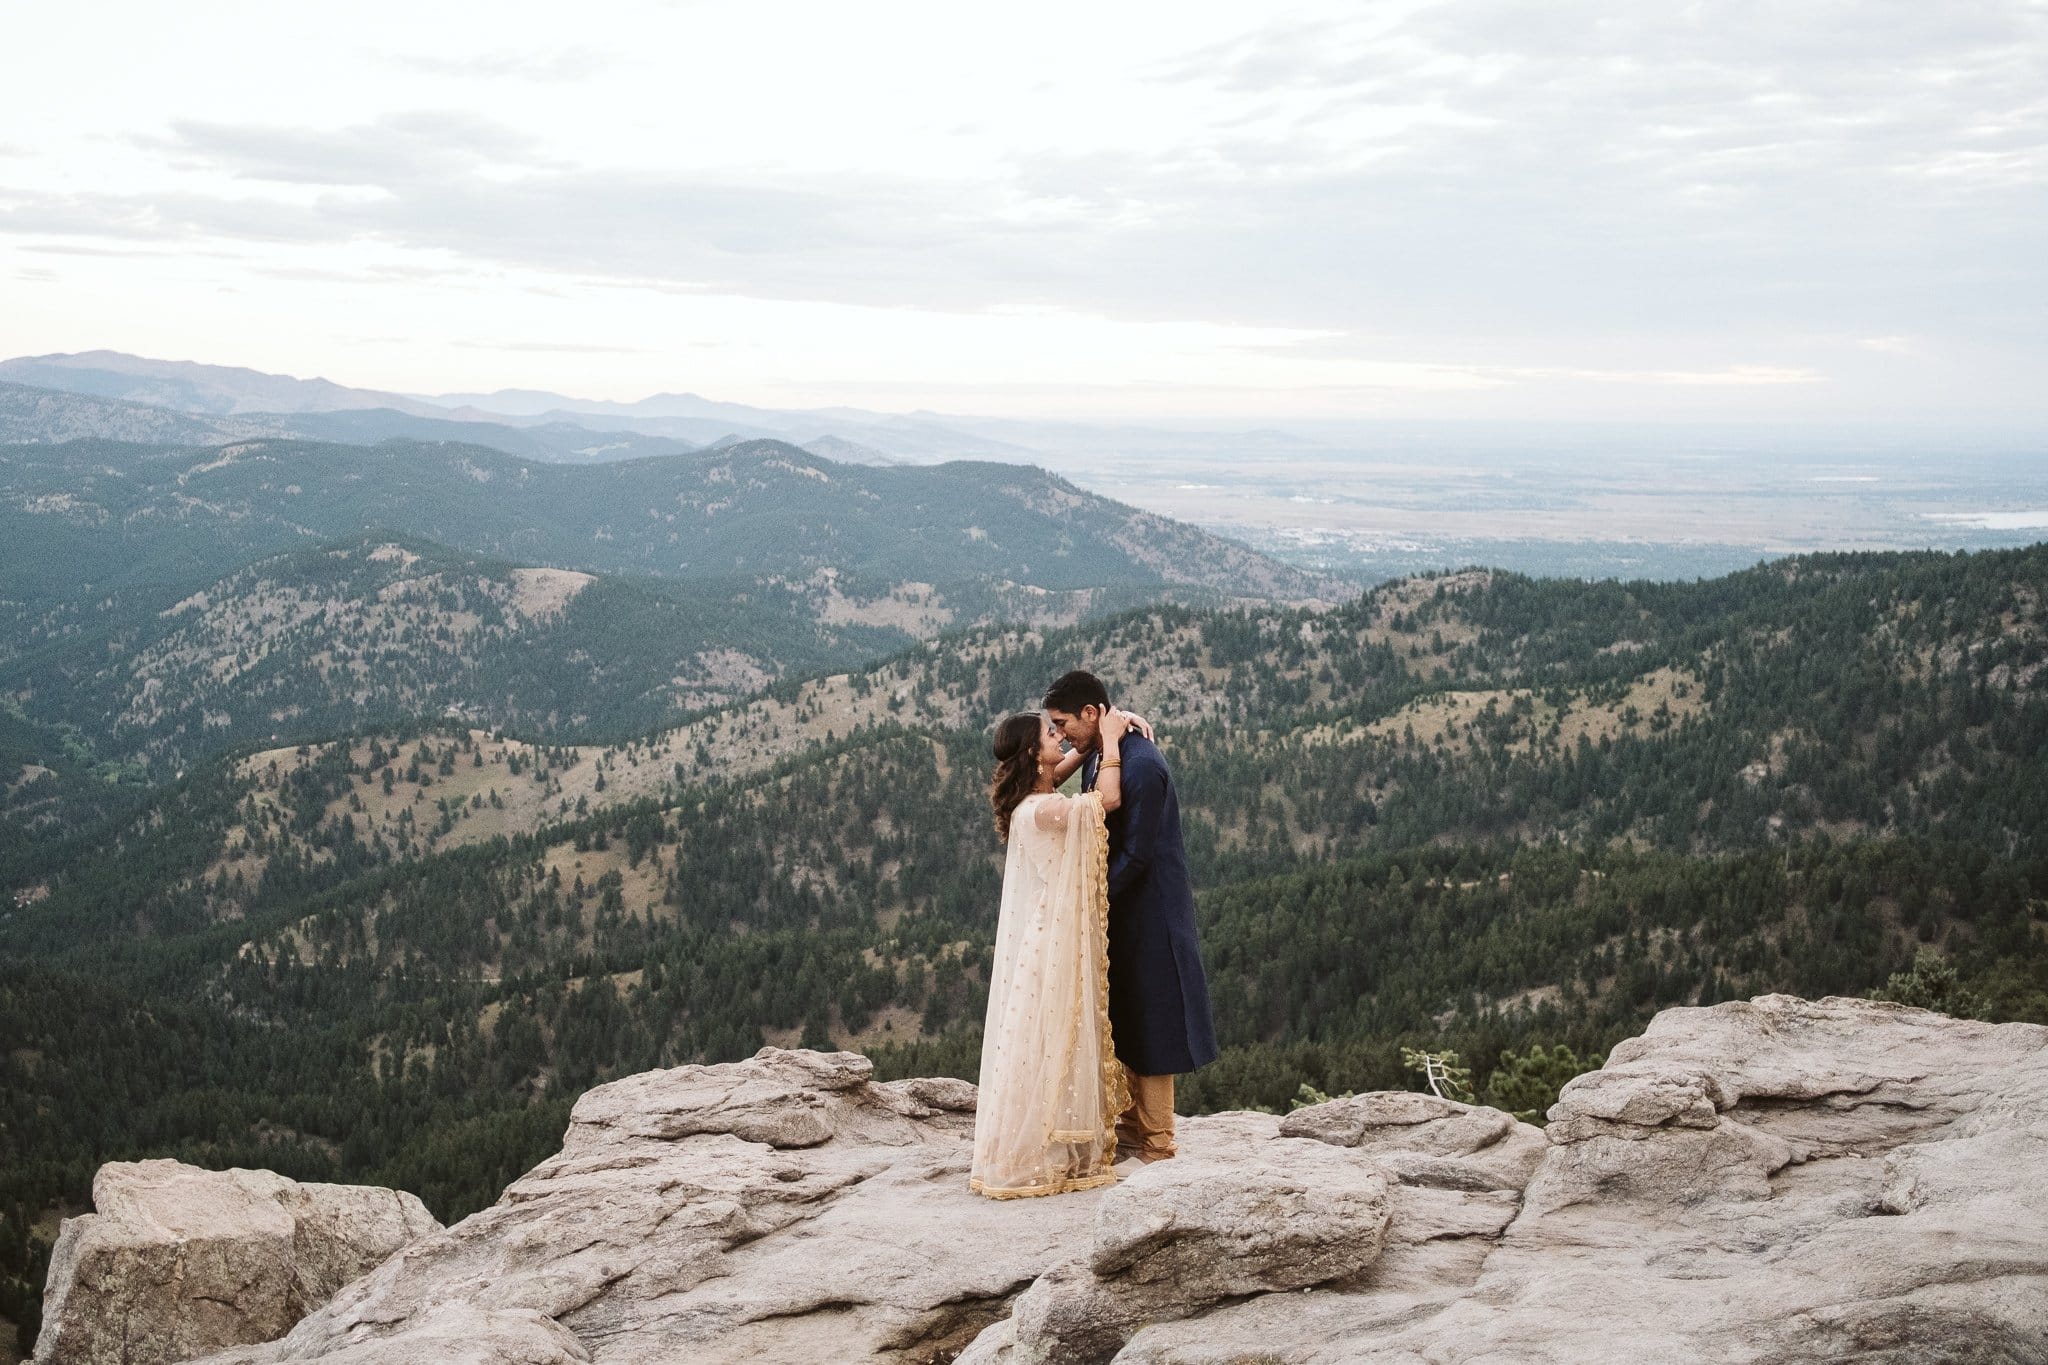 Boulder engagement session in the mountains, Indian engagement session outfits